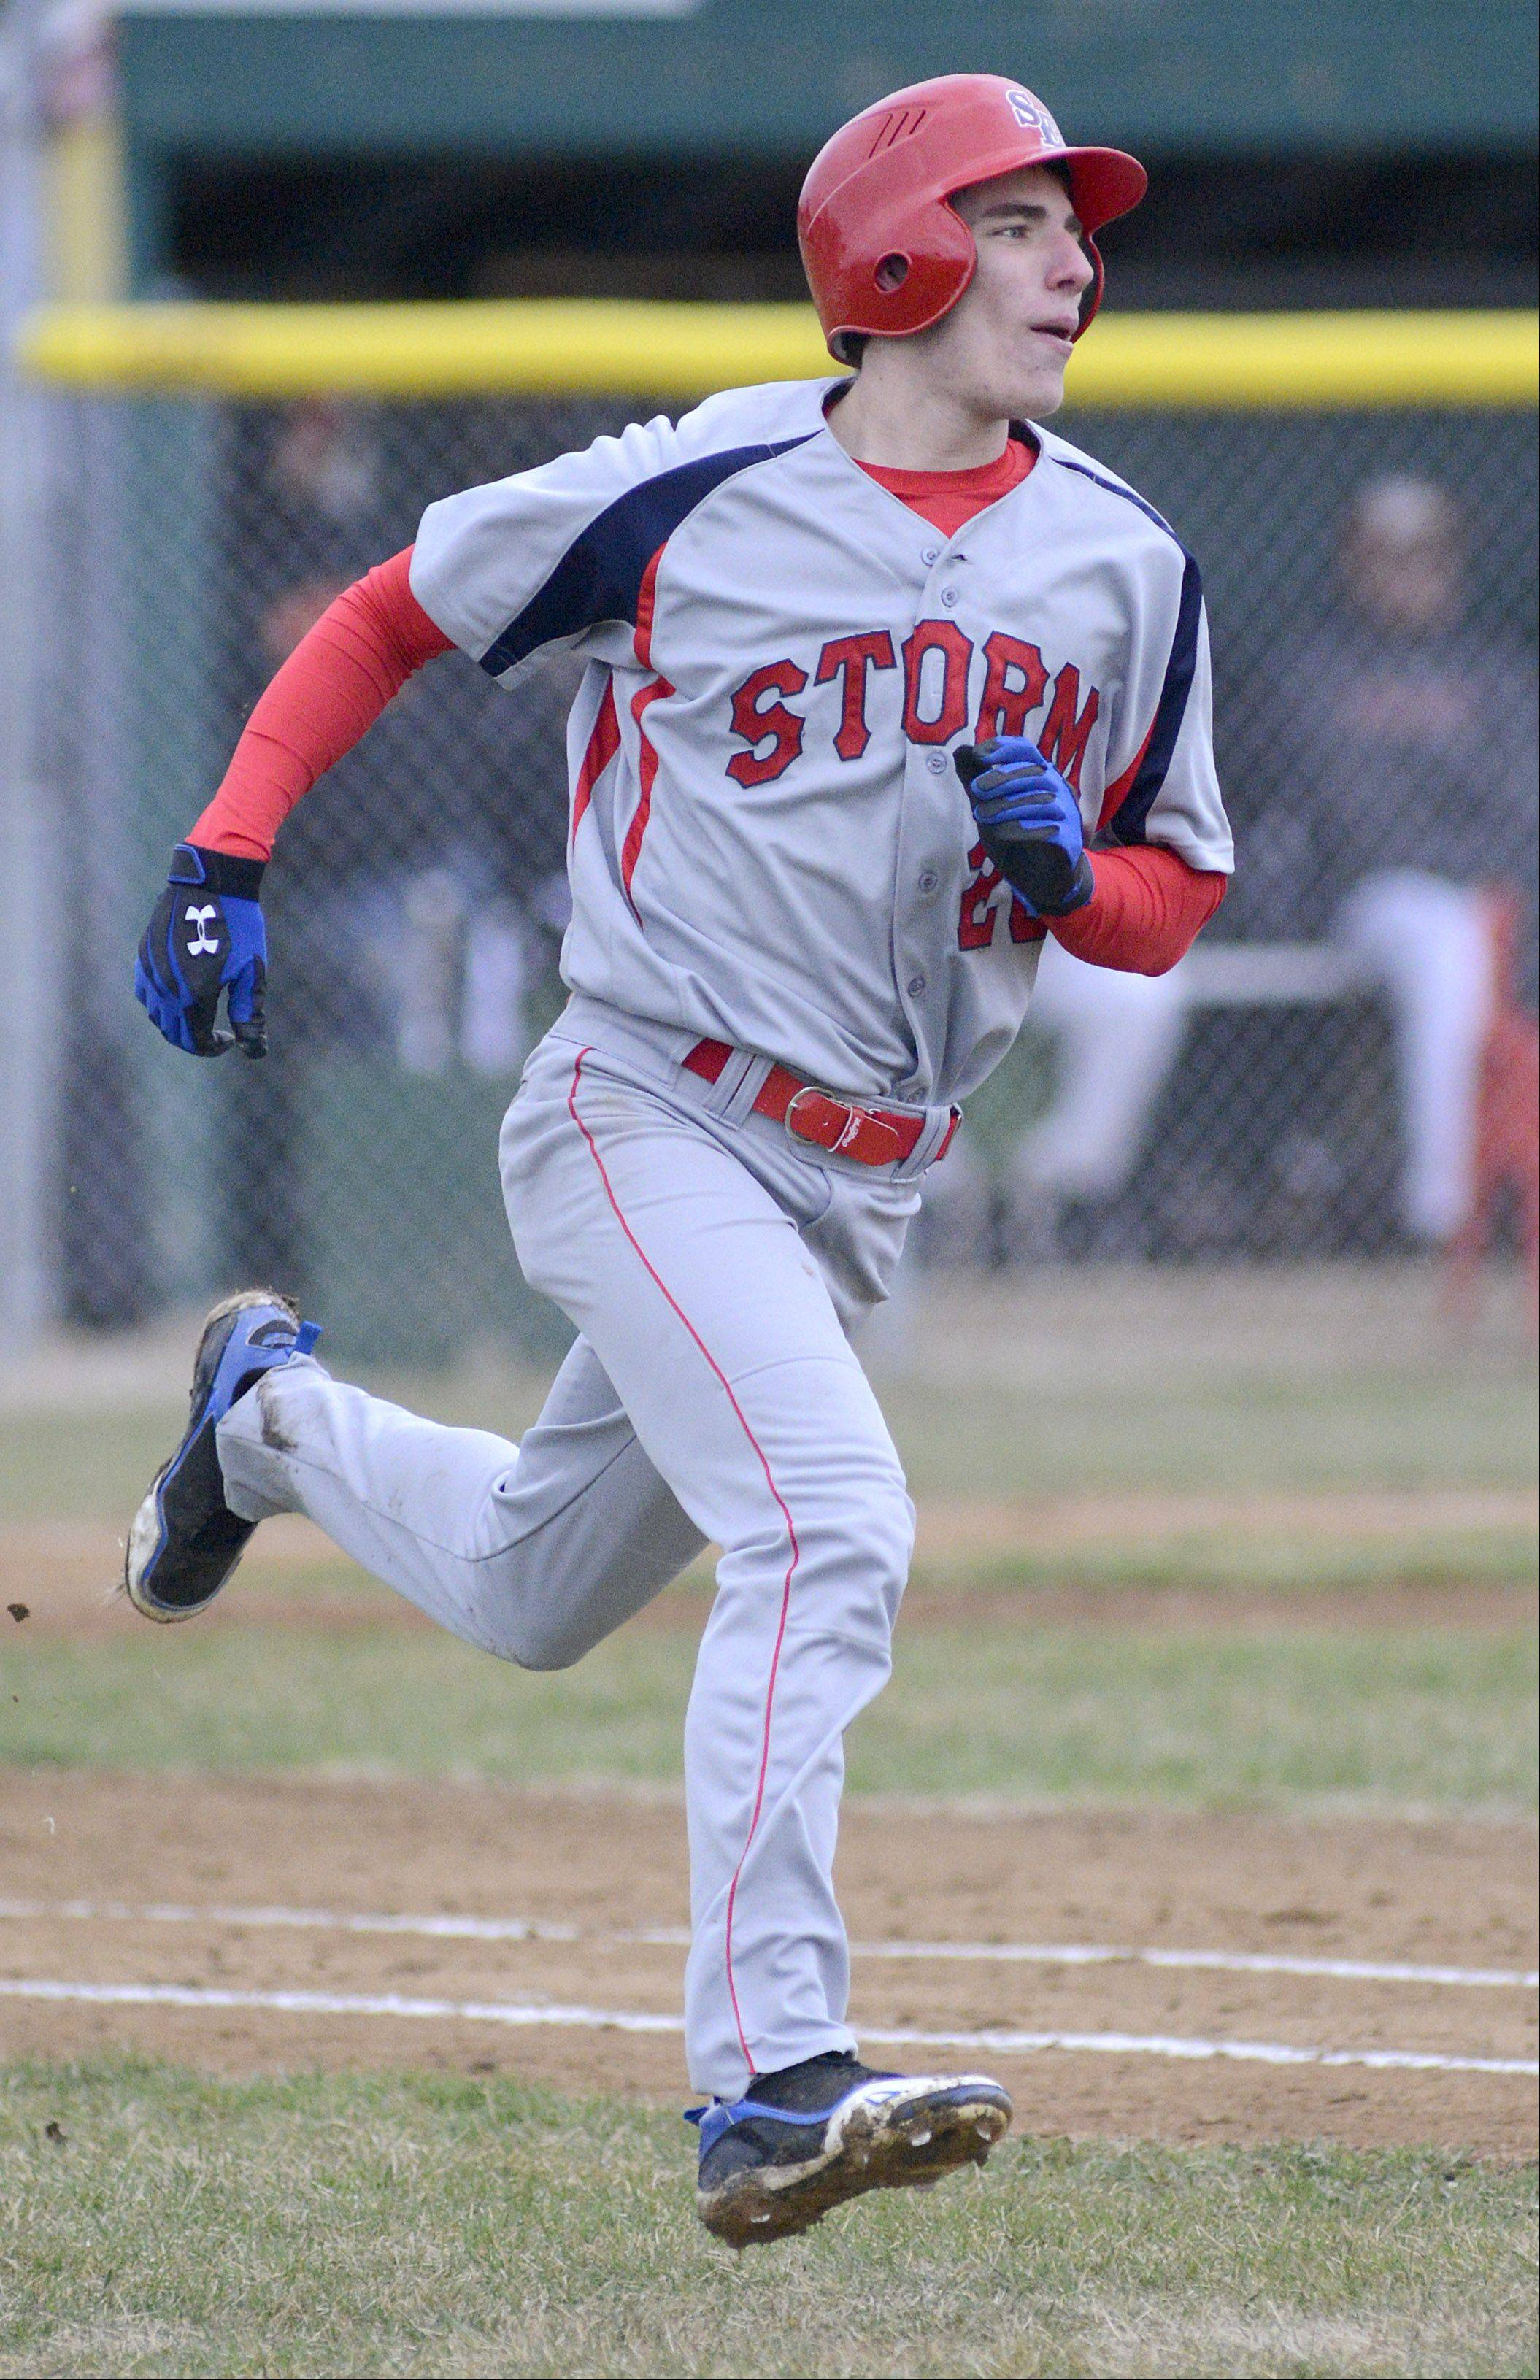 South Elgin senior Ryan Nutof has accepted a scholarship offer to play baseball at the University of Michigan.